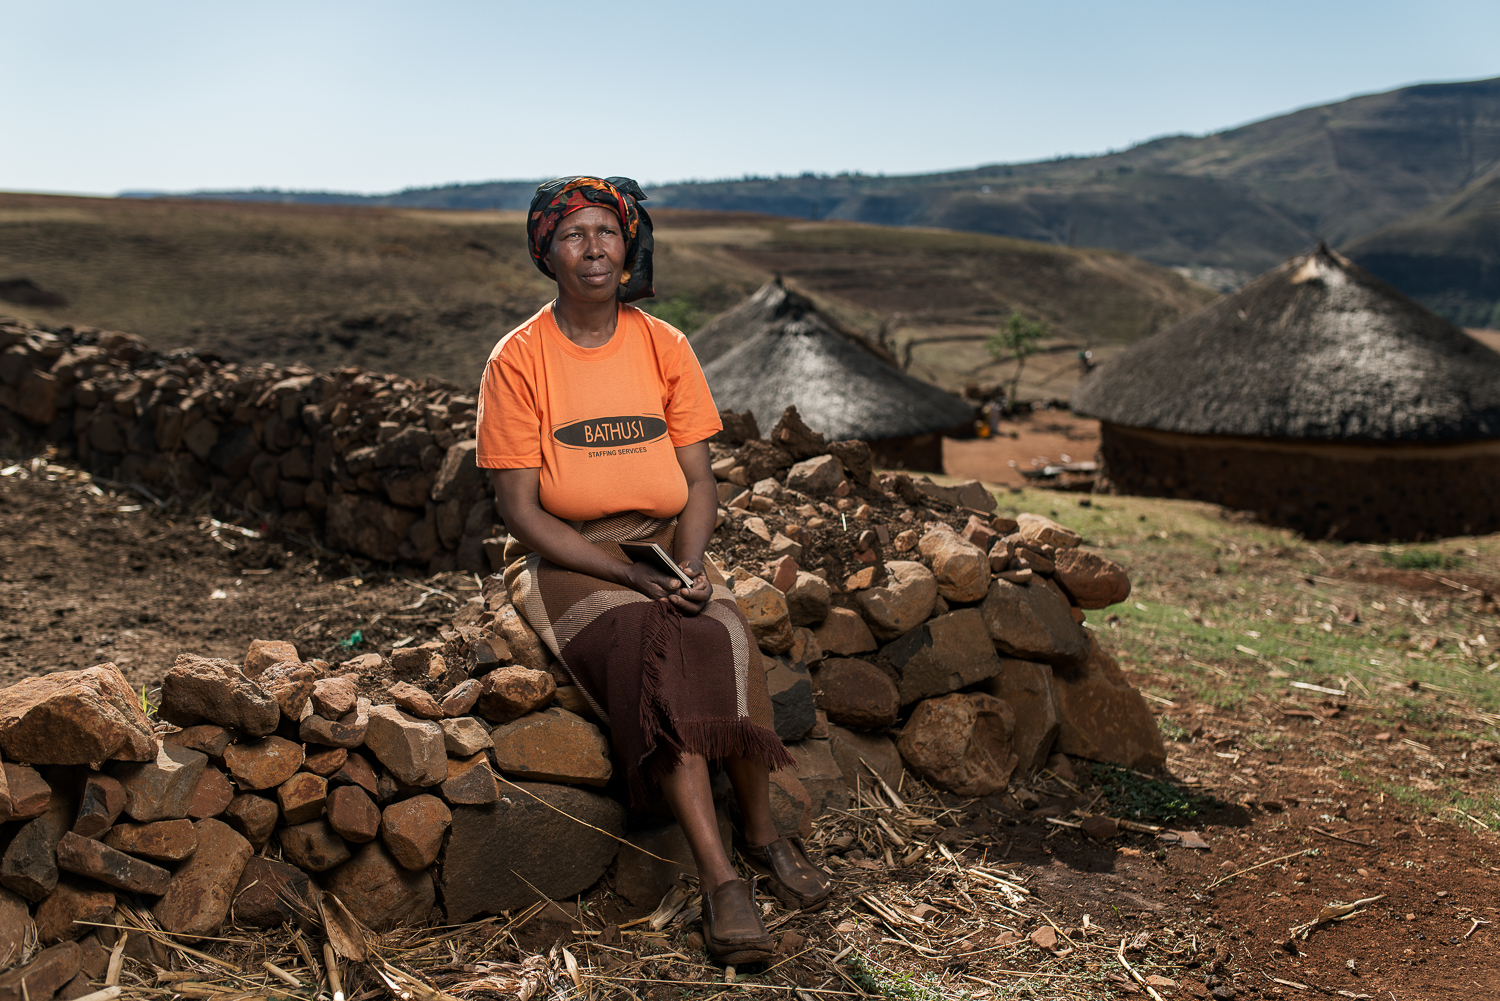 "Mataso   Makone,  the Widow of Molupe Makone, is 51 years old and lives in Butha Buthe, Lesotho. Her husband worked on the mines for 33 years, between 1974 and 2007 and died from tuberculosis in 2011. He was retrenched due to his medical condition but never received any compensation. Now she has to survive with money she receives from her daughters who are domestic workers in South Africa. Speaking about why she married a miner she said that they met when she was 16, he sent a friend to tell her that he was interested. ""I liked him a lot also,"" she said. ""Since he was already working I felt safe with him because I knew he was going to provide""."